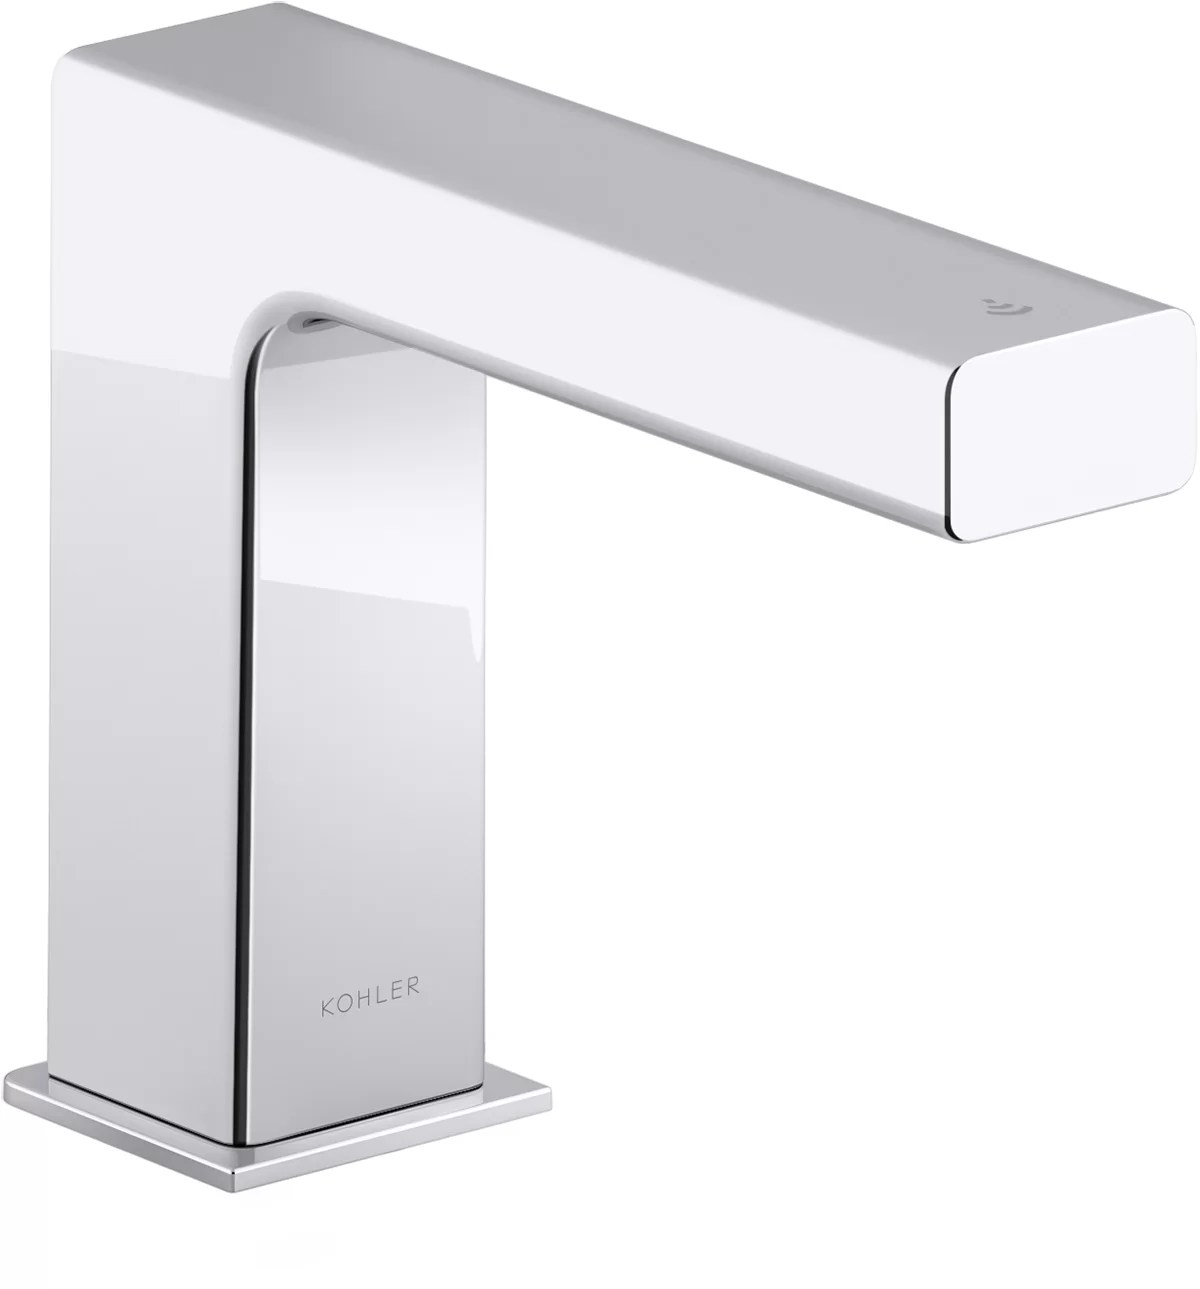 strayt touchless bathroom sink faucet with kinesis sensor technology ac powered